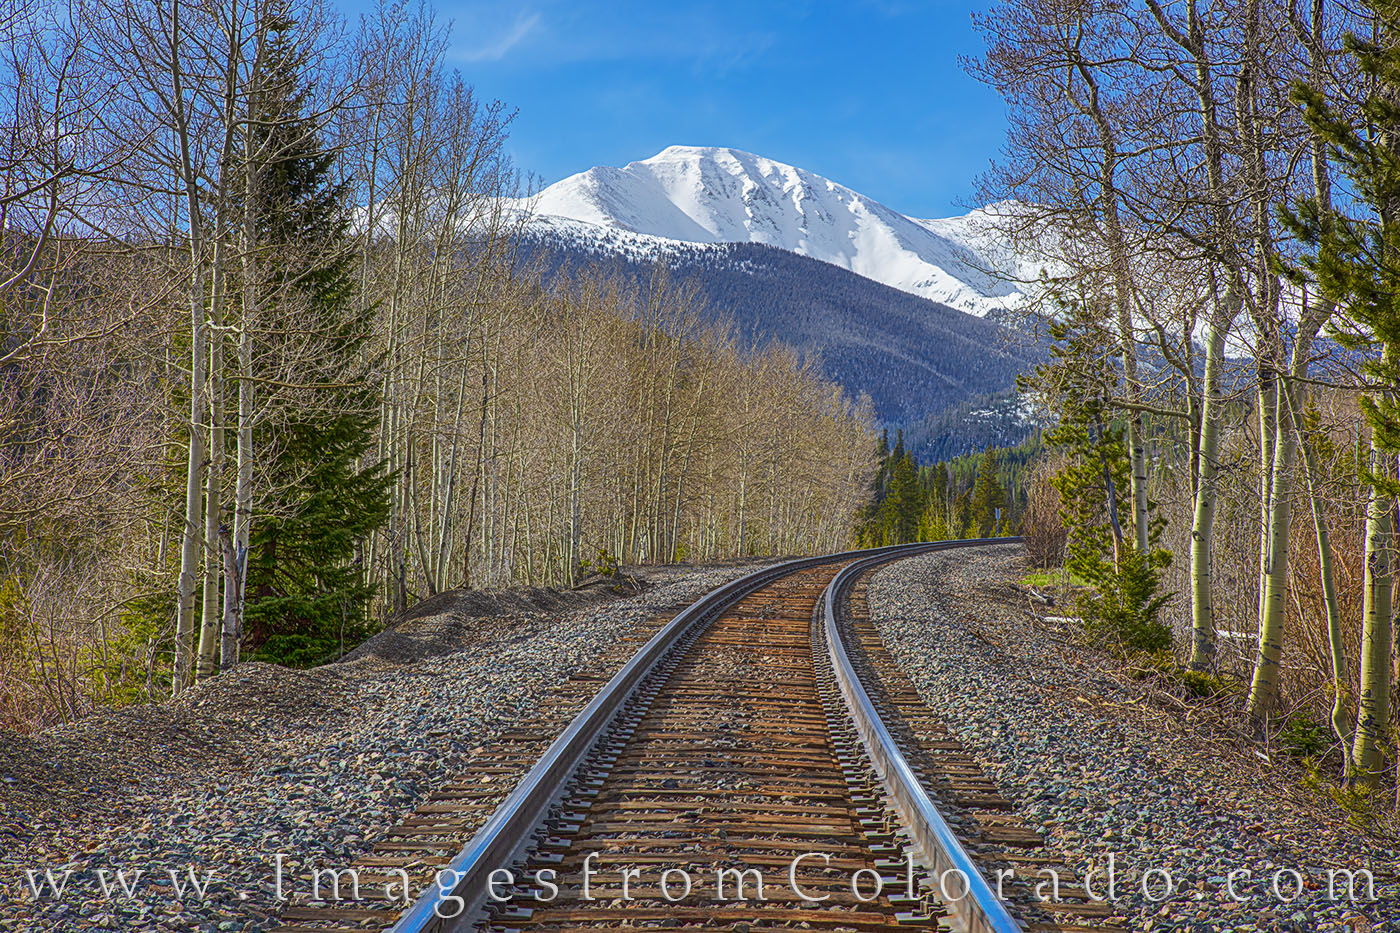 train tracks, winter park, spring, snow, mountains, continential divide, parry peak, james peak, morning, cold, photo